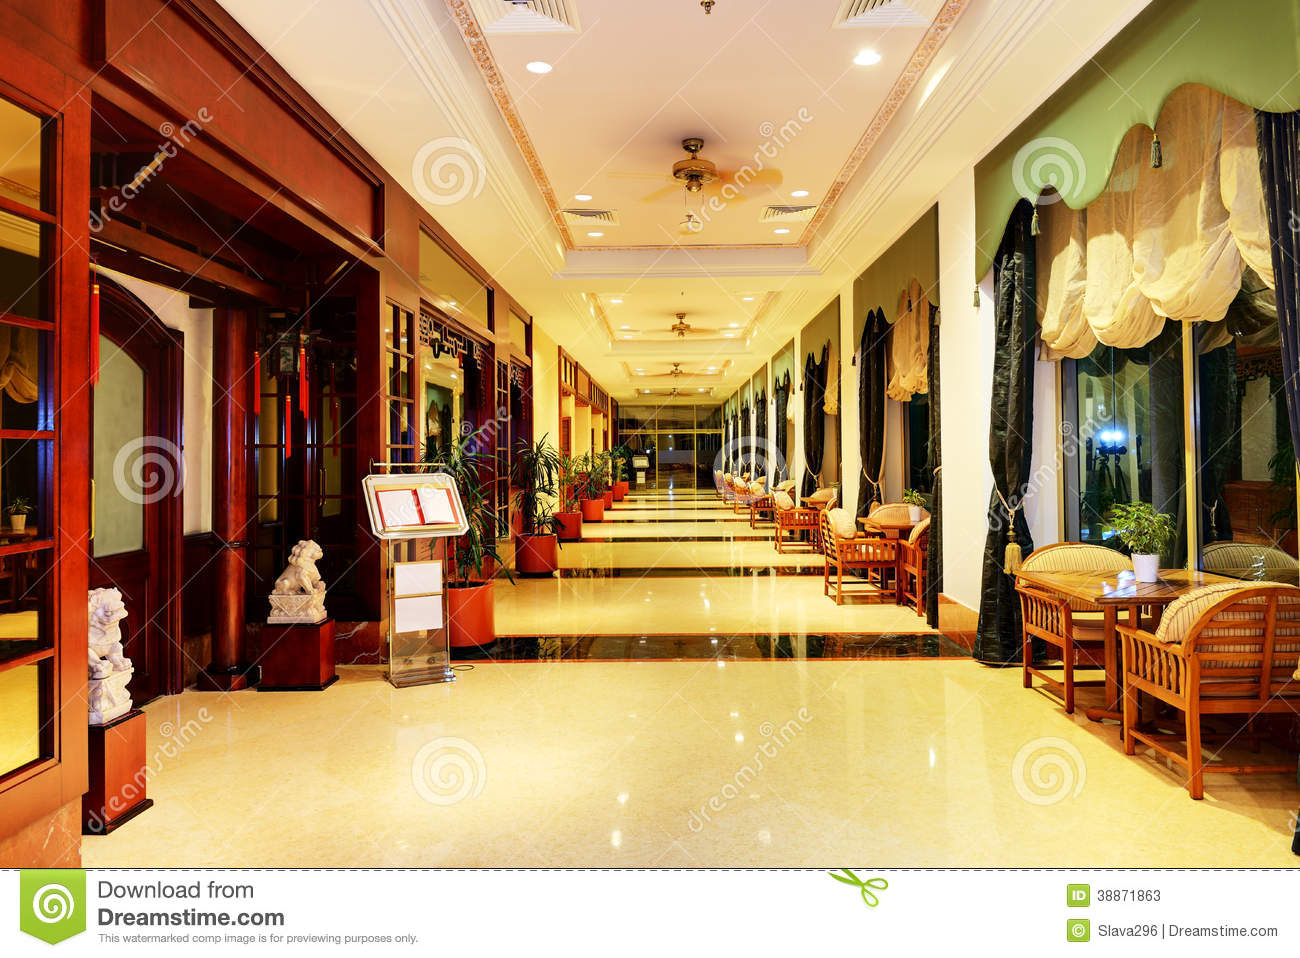 Entrance in restaurant and interior of hotel stock photo